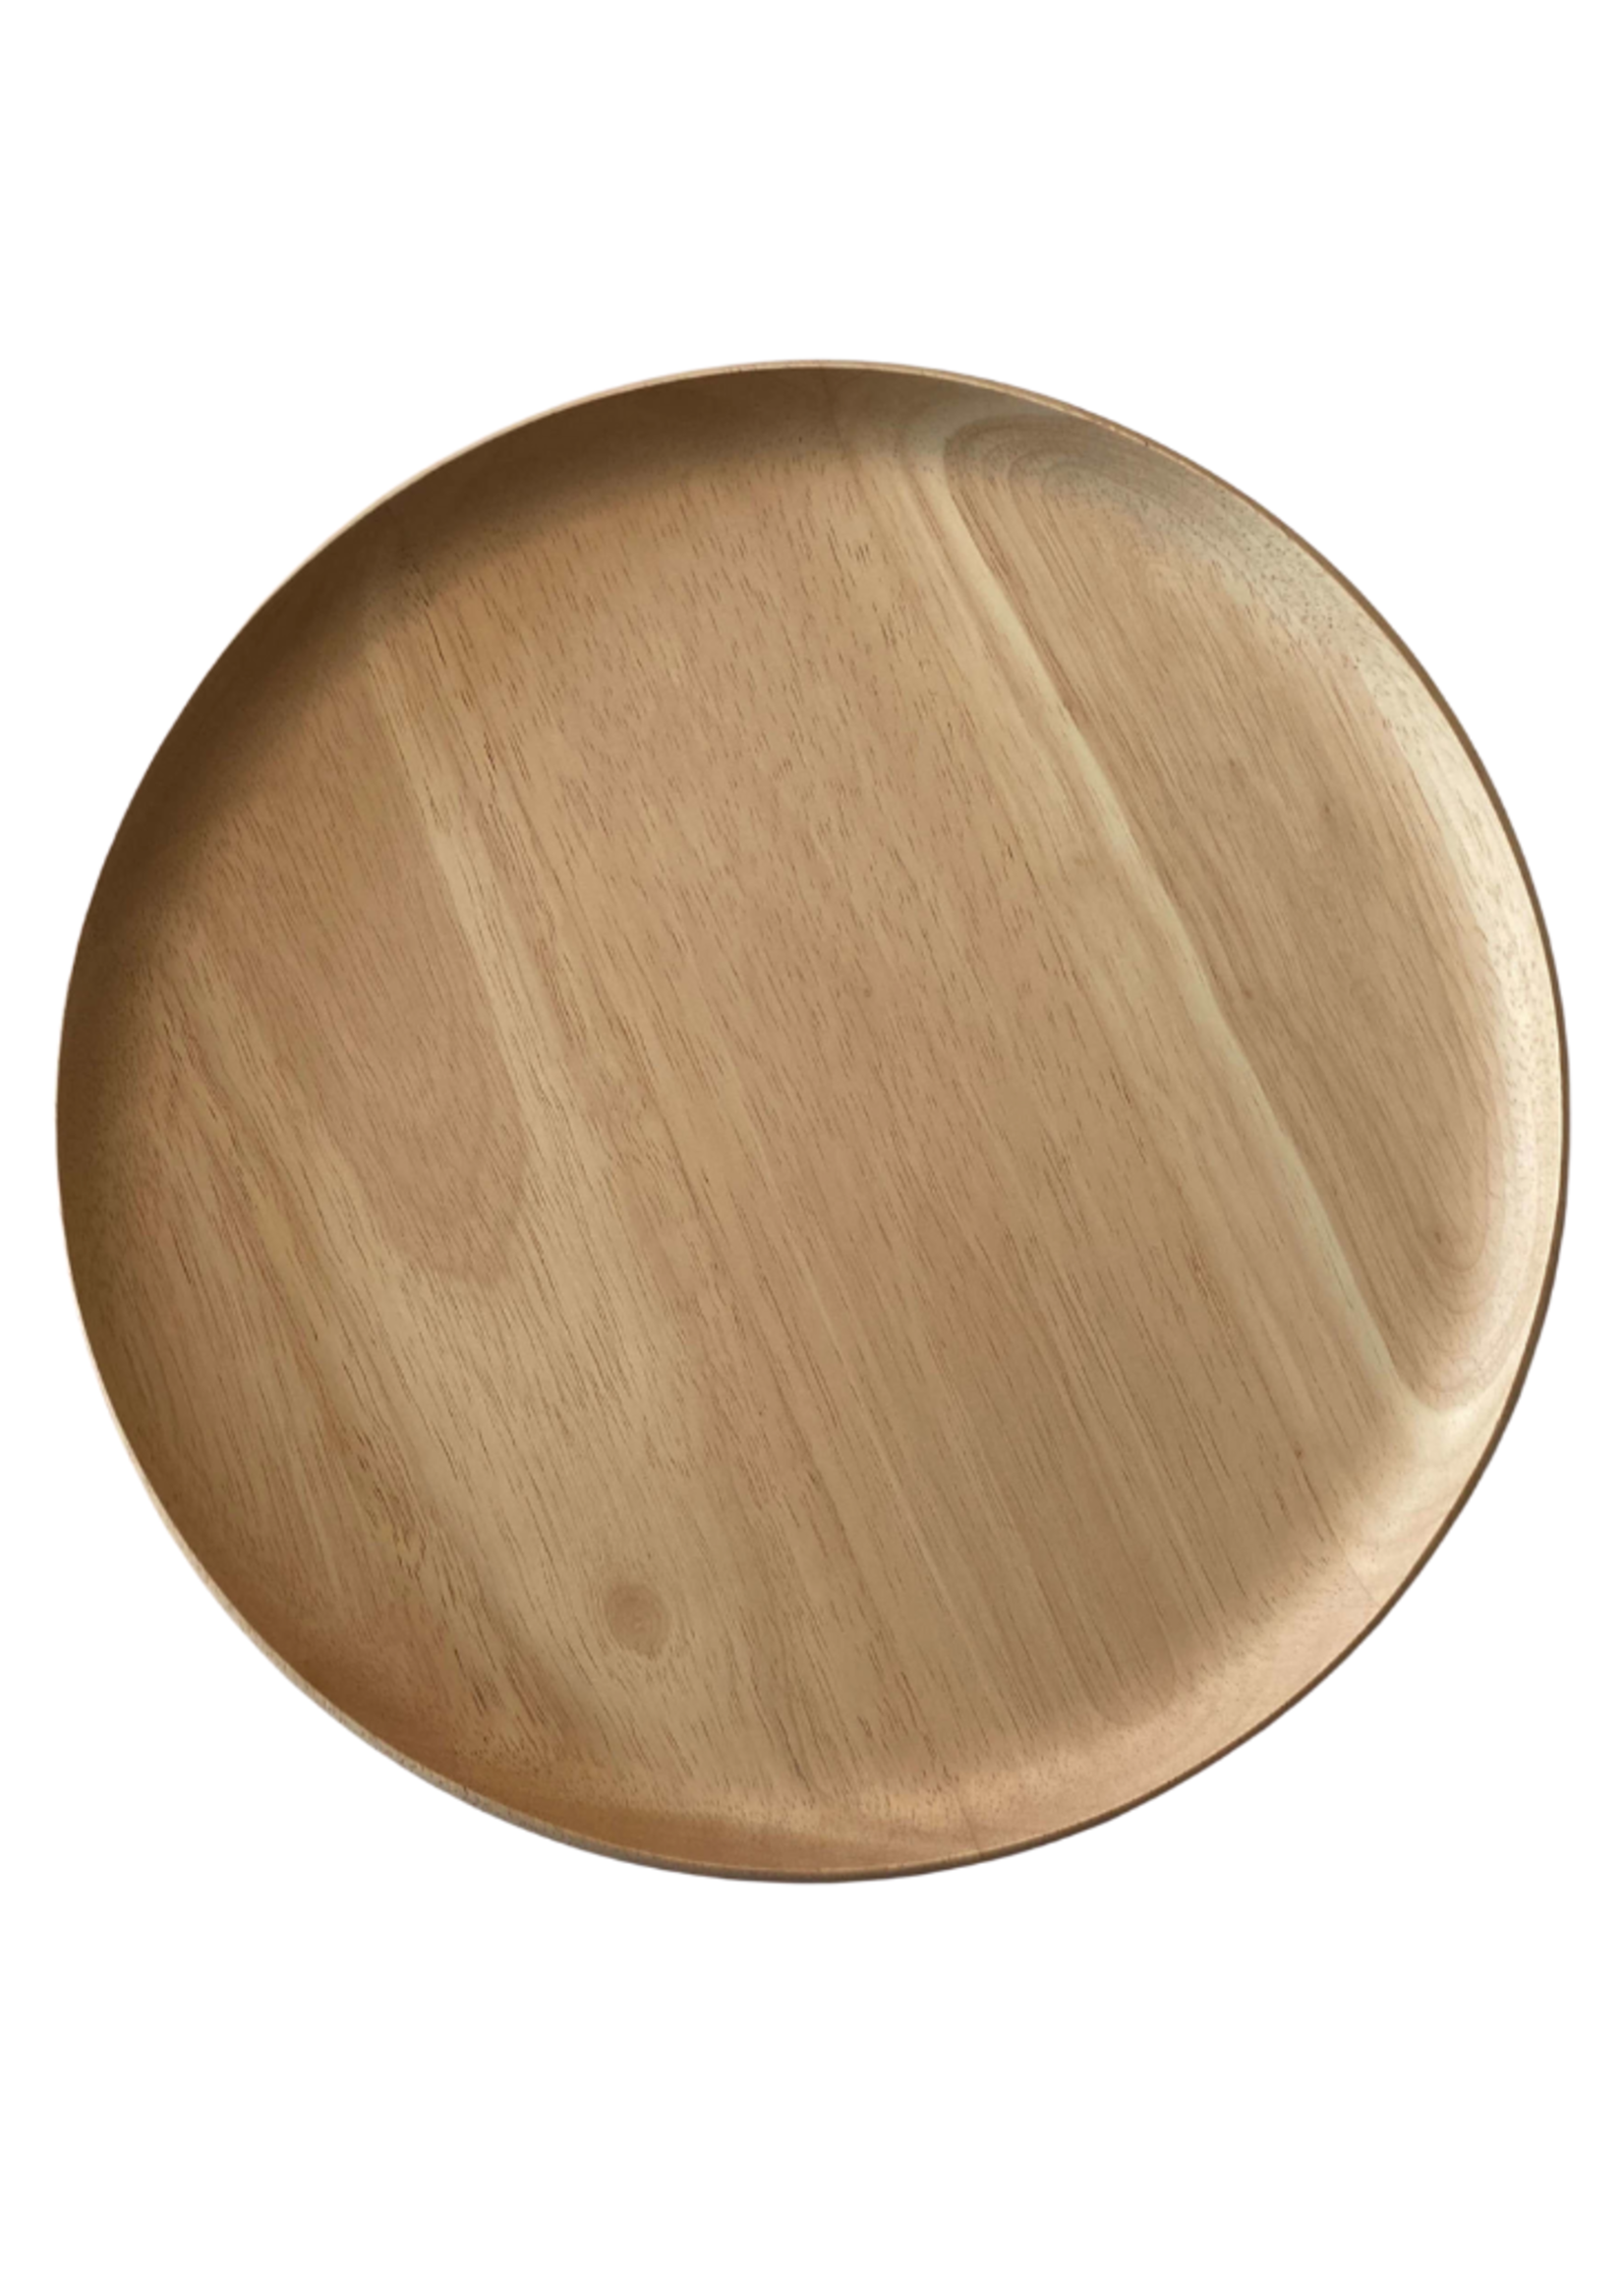 Yod & Co. Round Serving Tray